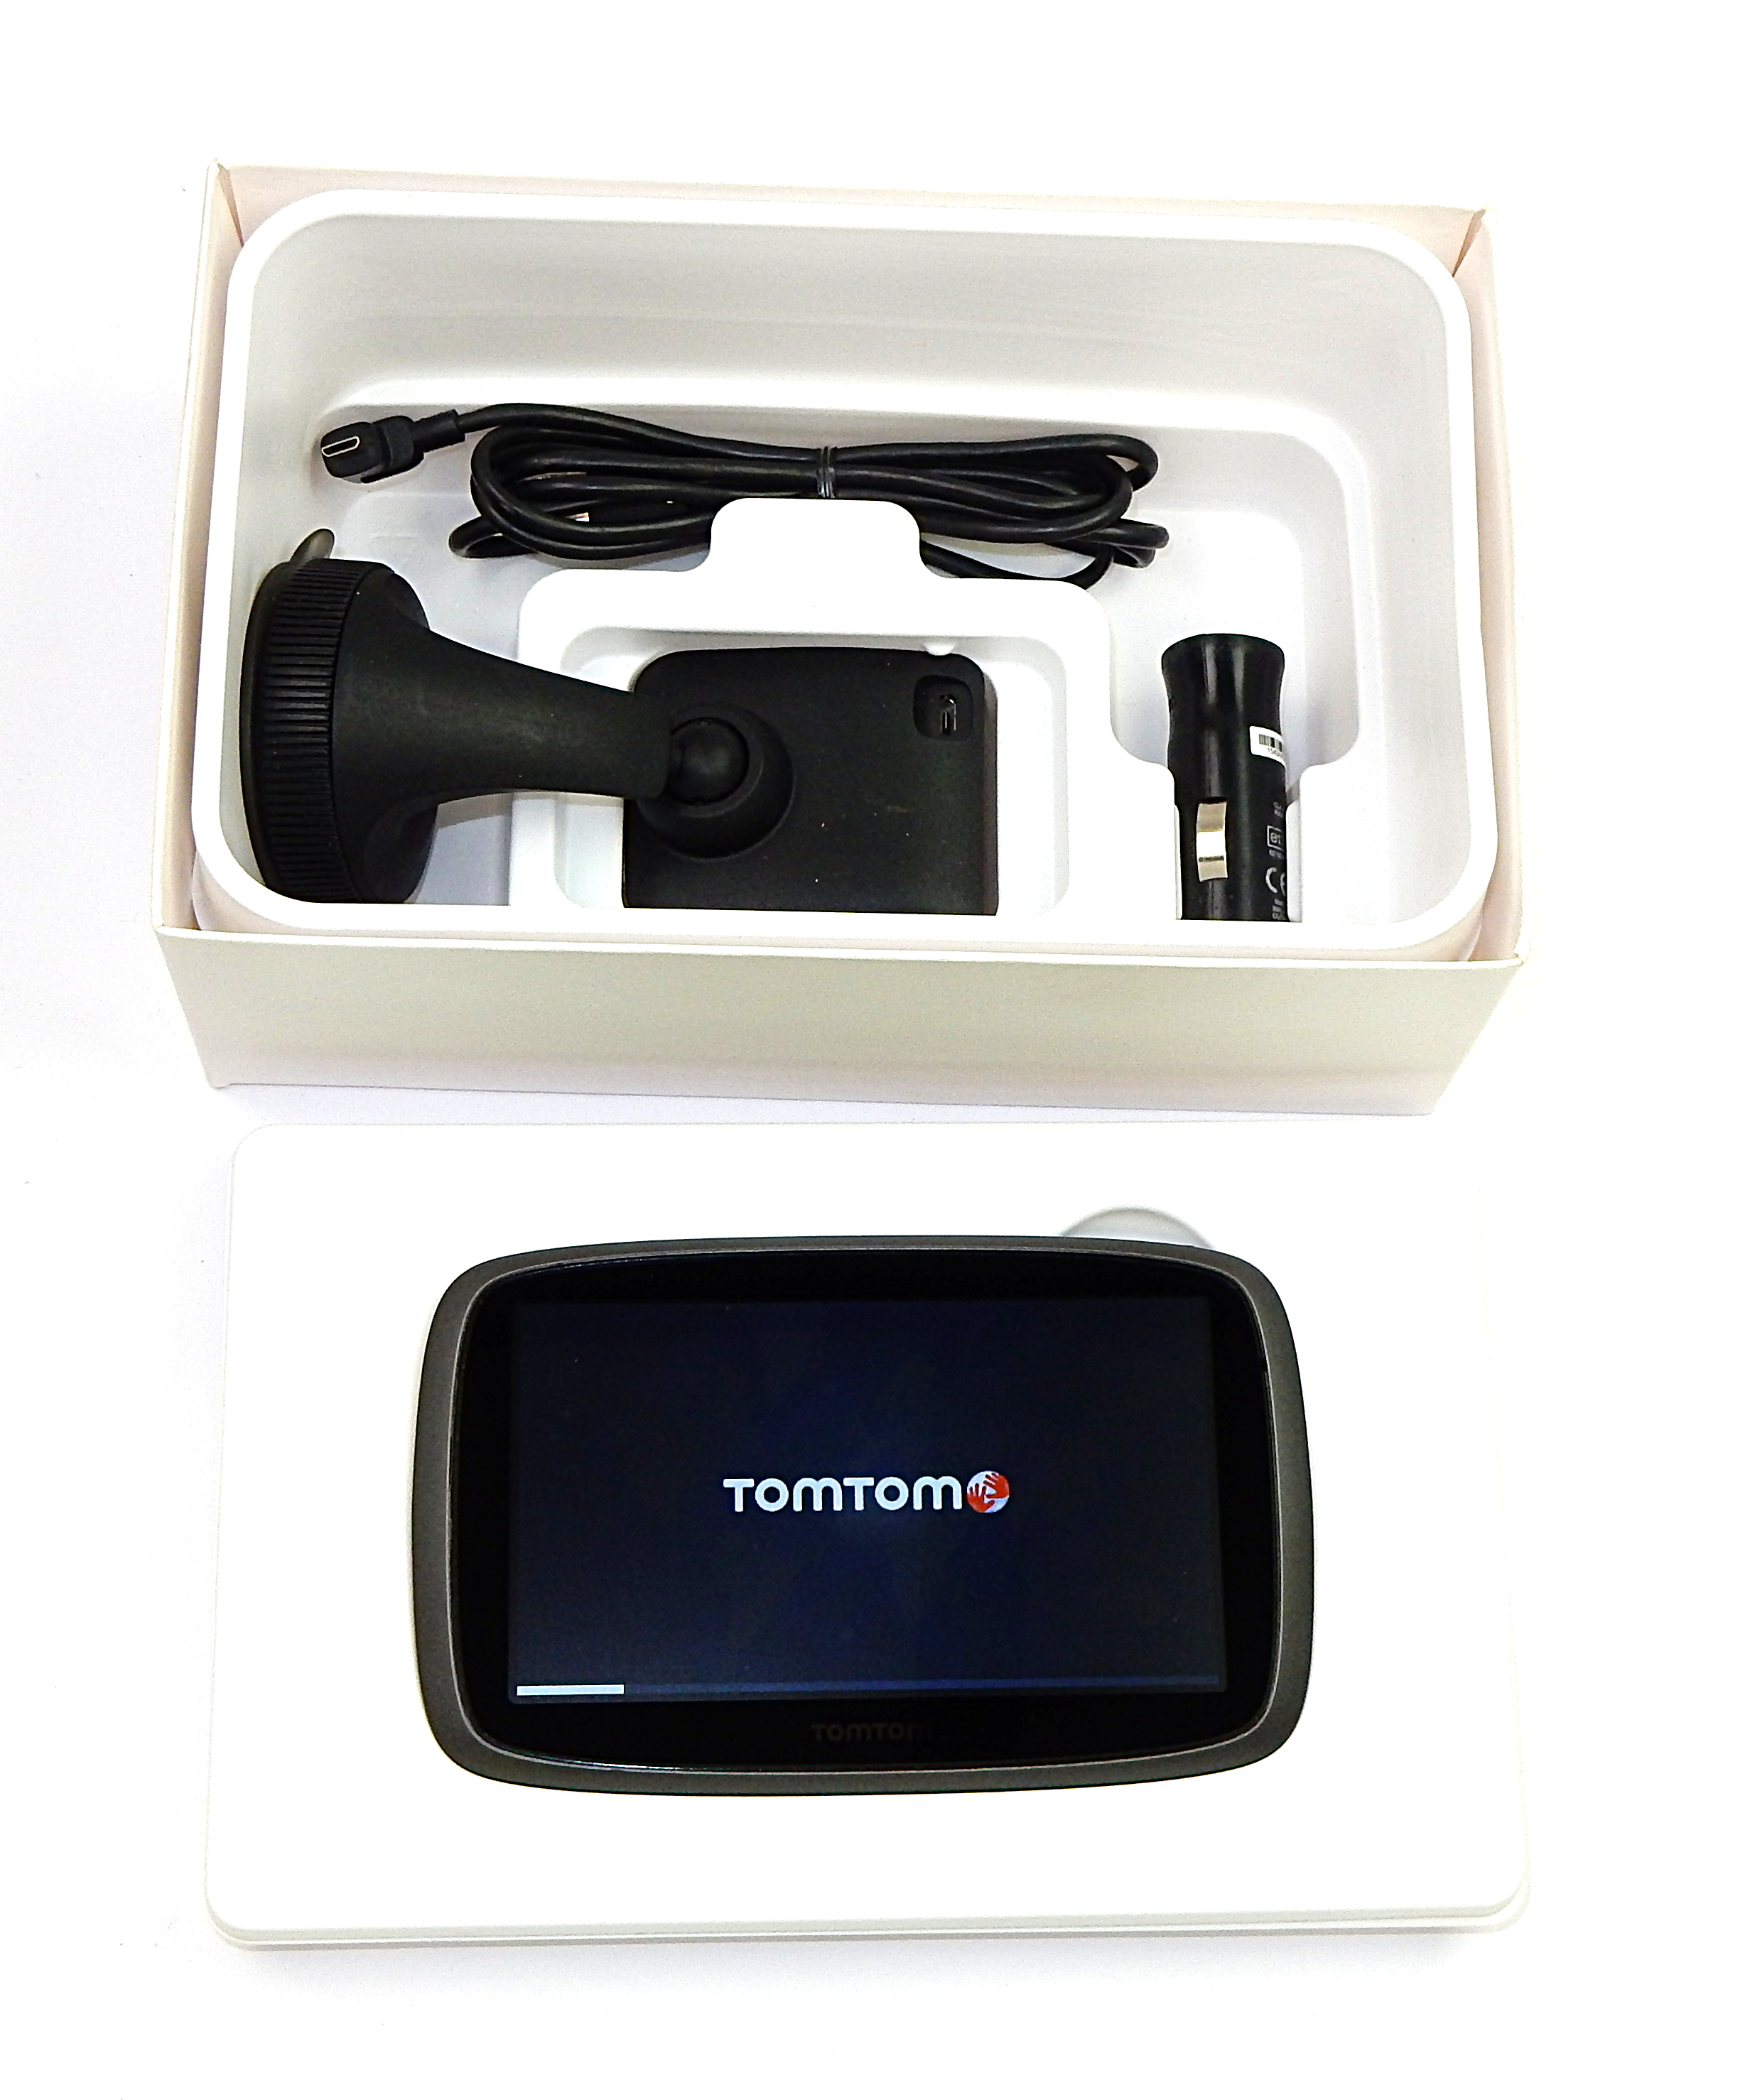 TomTom GO 500 Sat Nav With Western Europe Maps 4FA50 w/ Carry Case